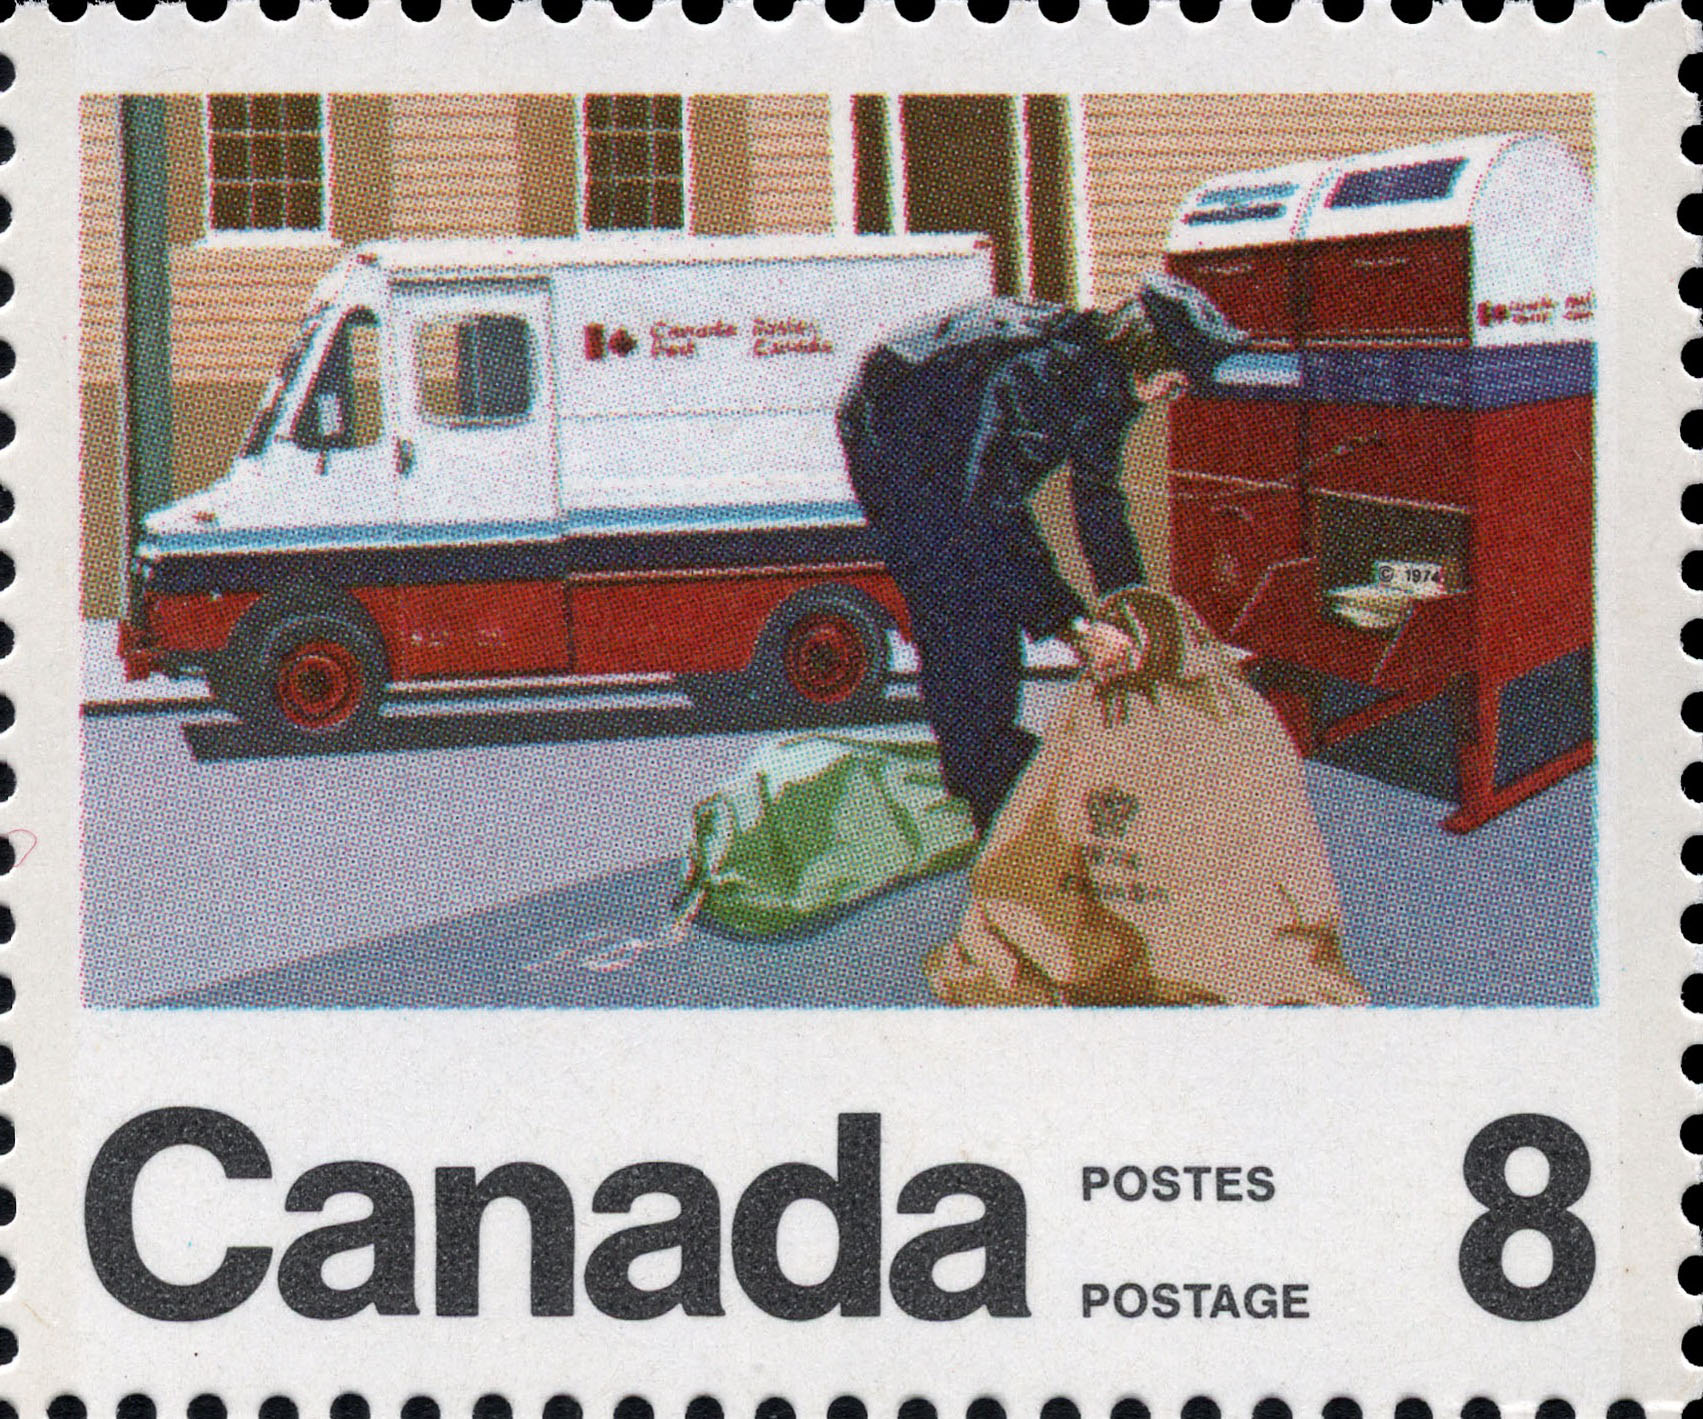 Mail Services Courier Canada Postage Stamp | Centenary of the Letter Carrier Delivery Service